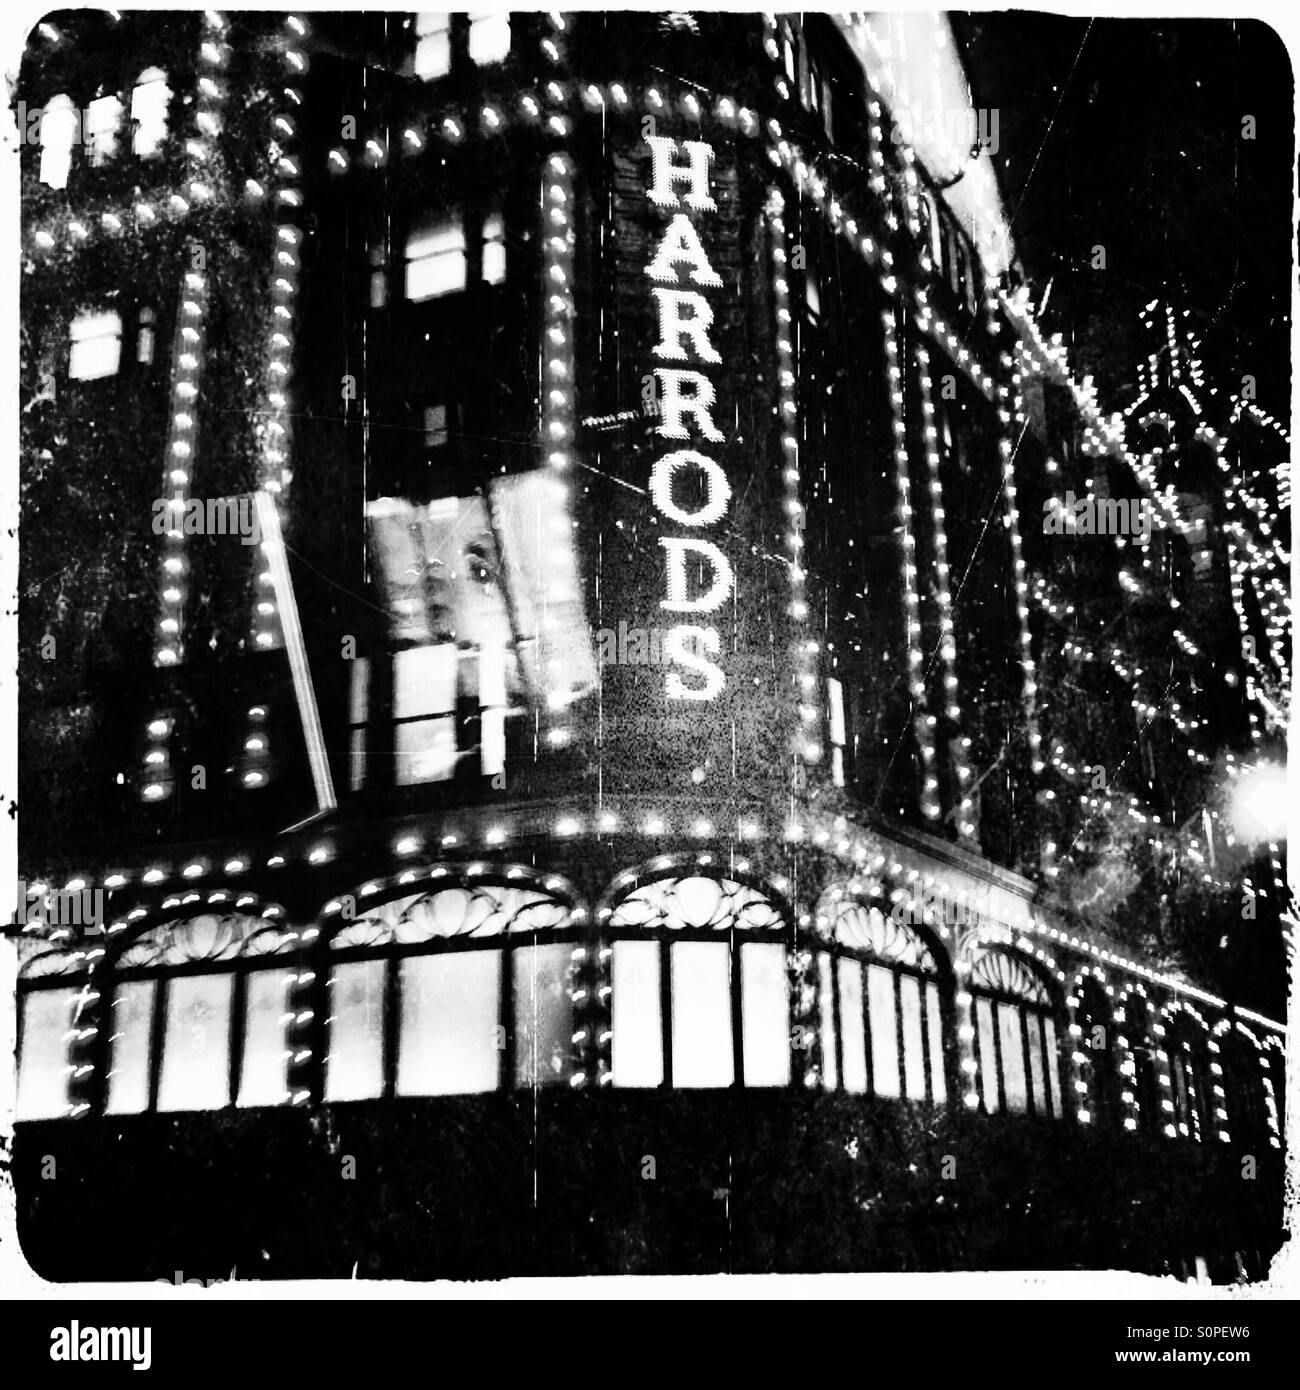 Harrods at night, Brompton Road, Knightsbridge, Royal Borough of Kensington and Chelsea, Central London, England, Stock Photo